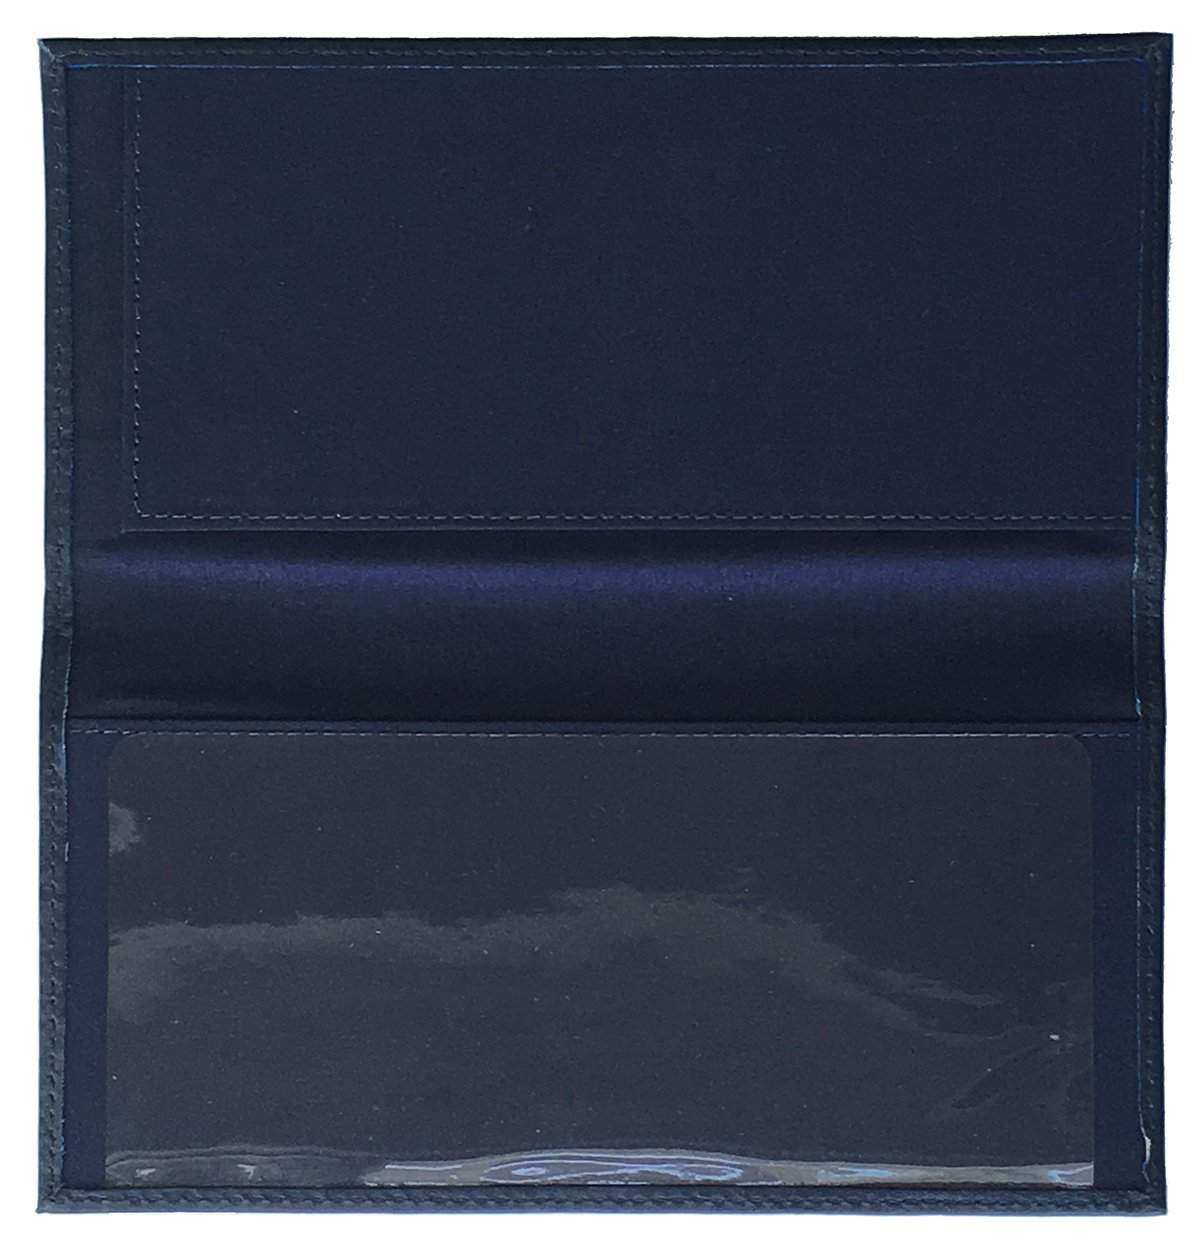 824836a08f61 Blue Basic Leather Checkbook Cover